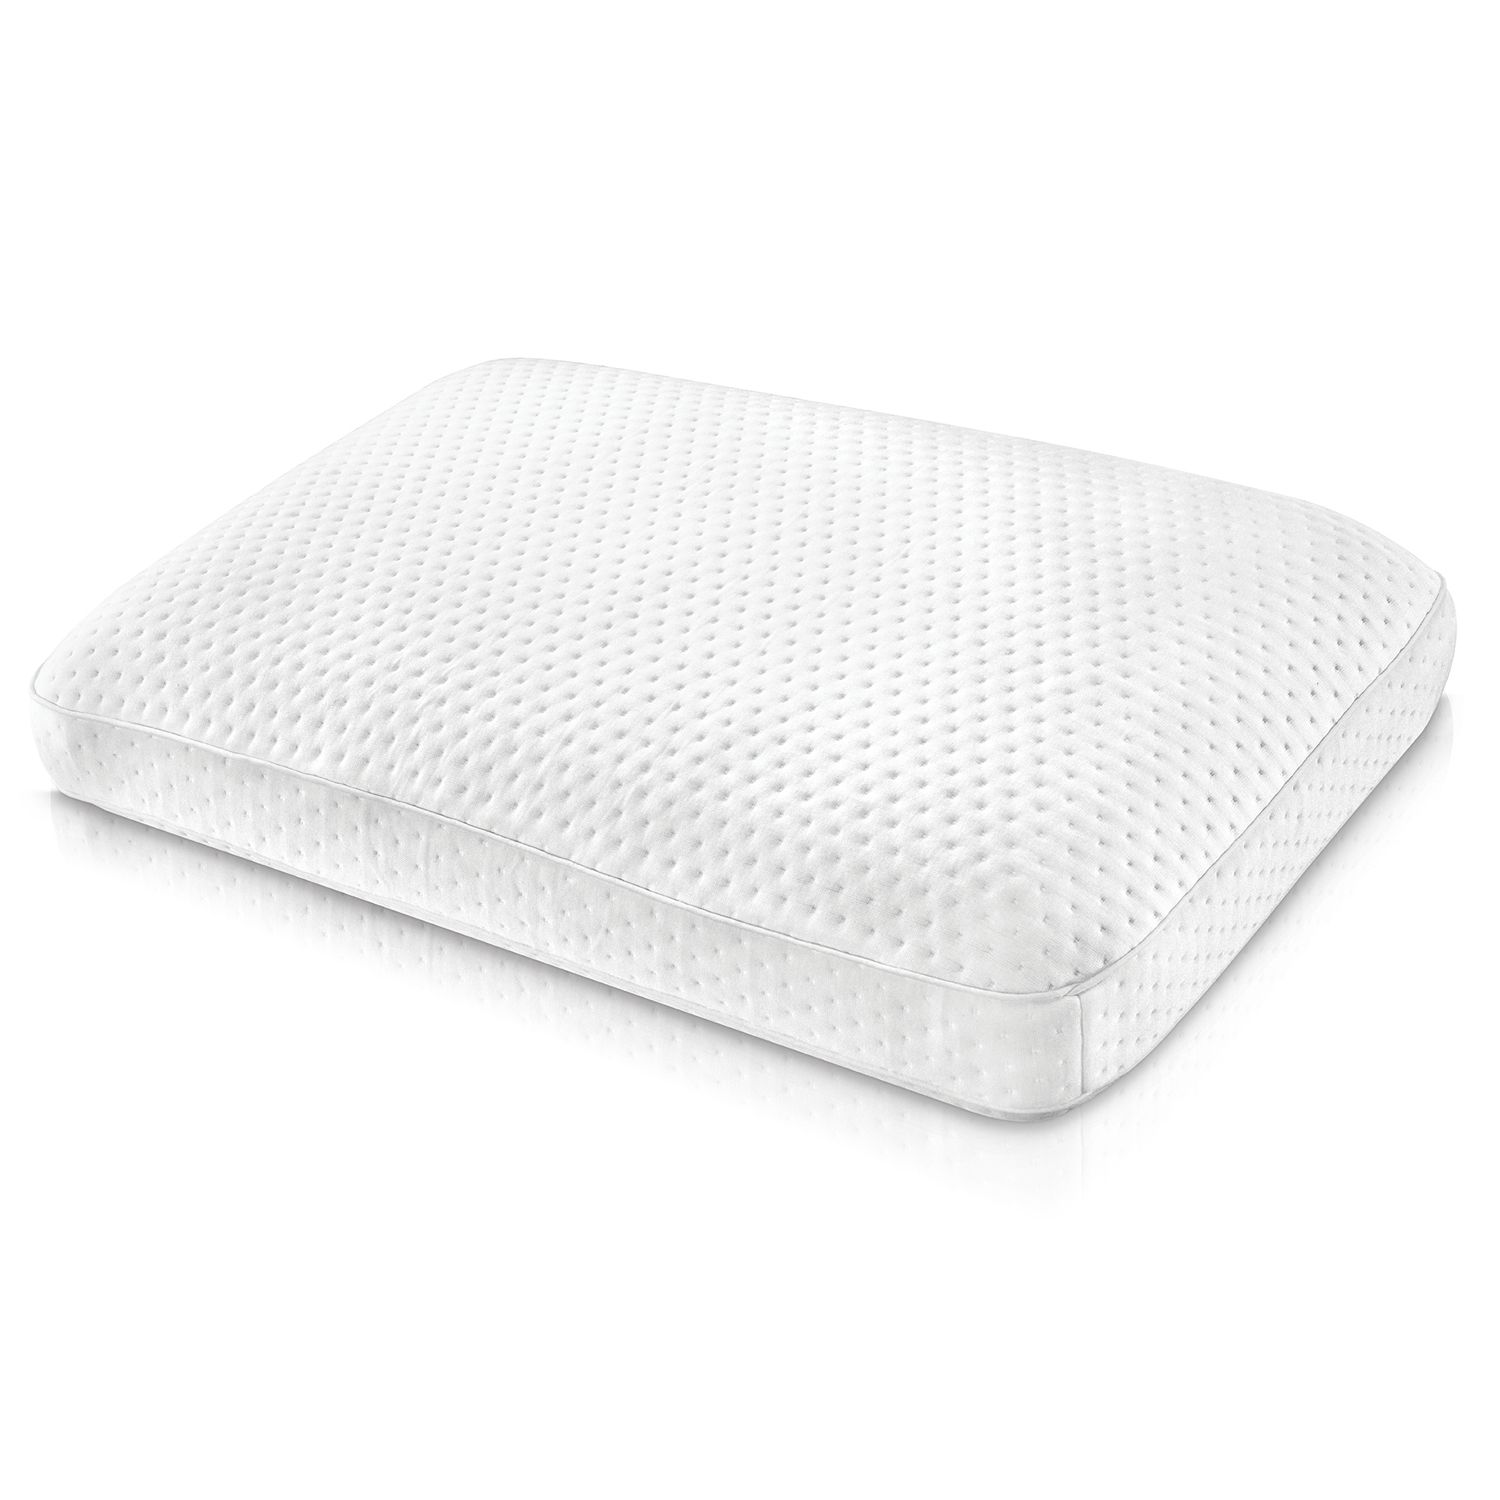 sensorpedic luxury memory foam pillow